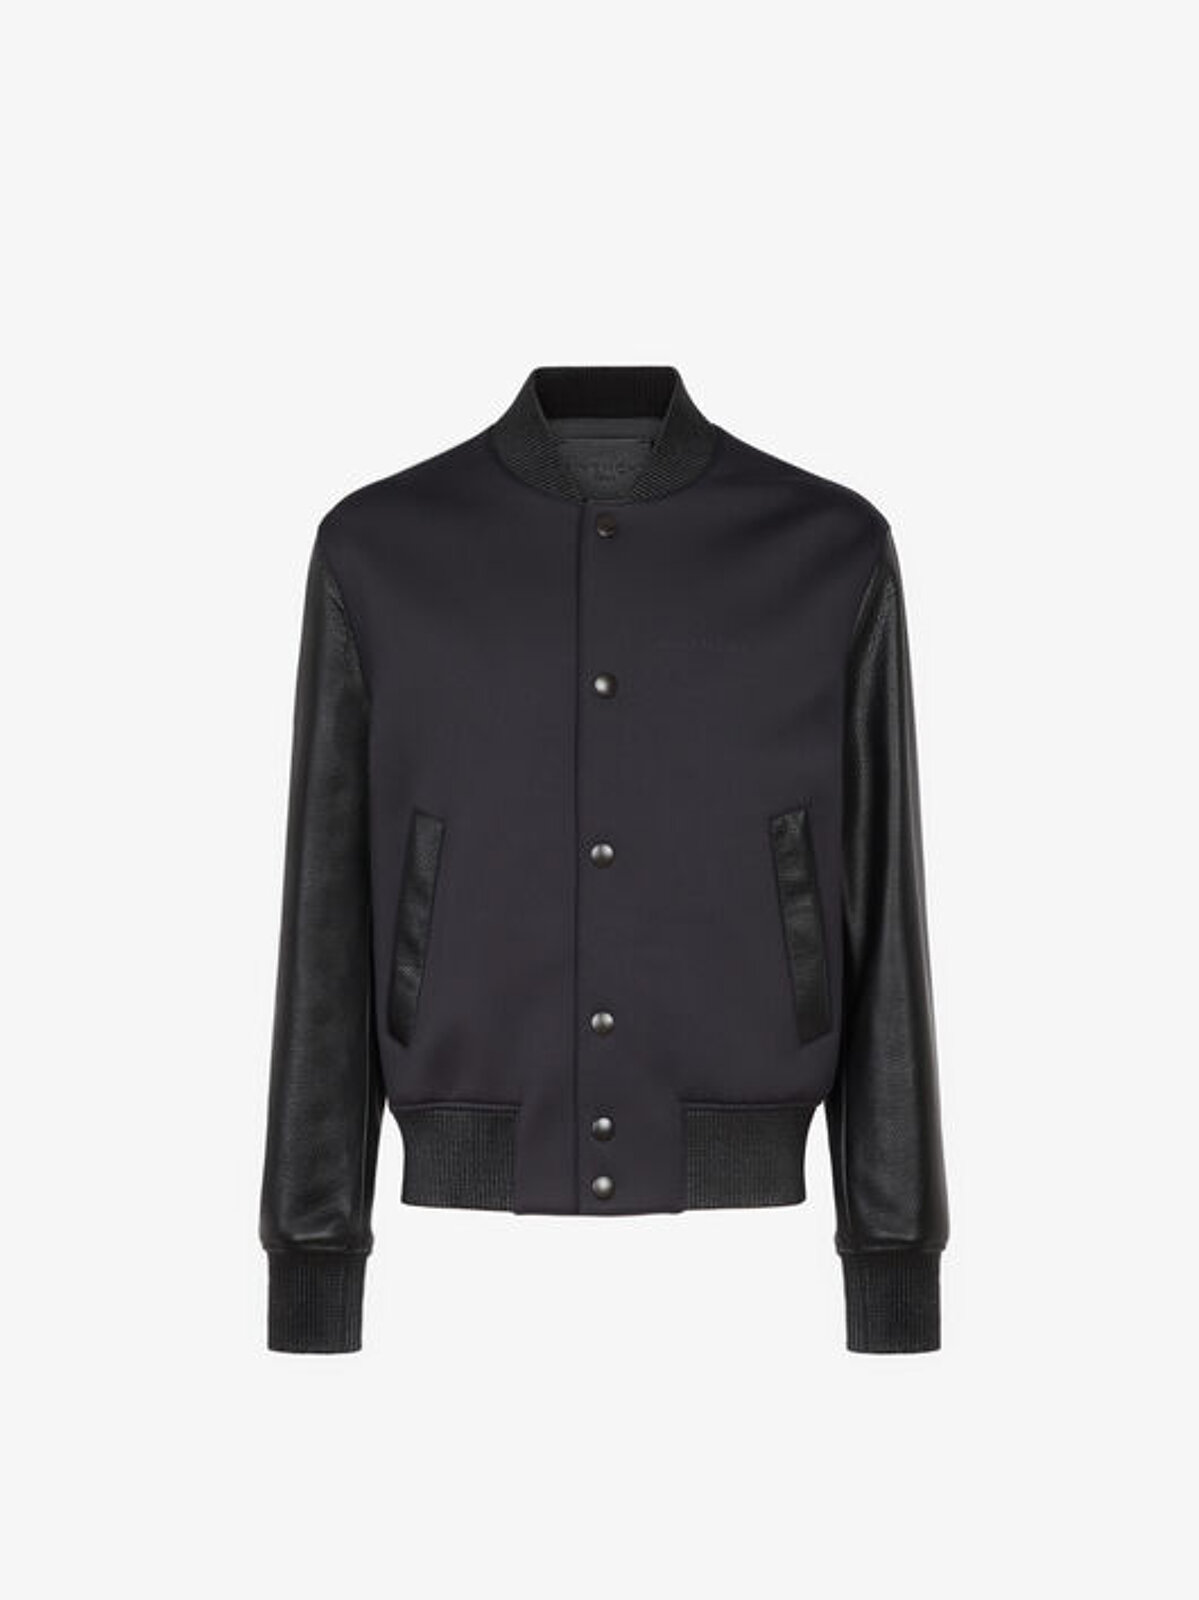 GIVENCHY neoprene and leather bomber jacket - Givenchy